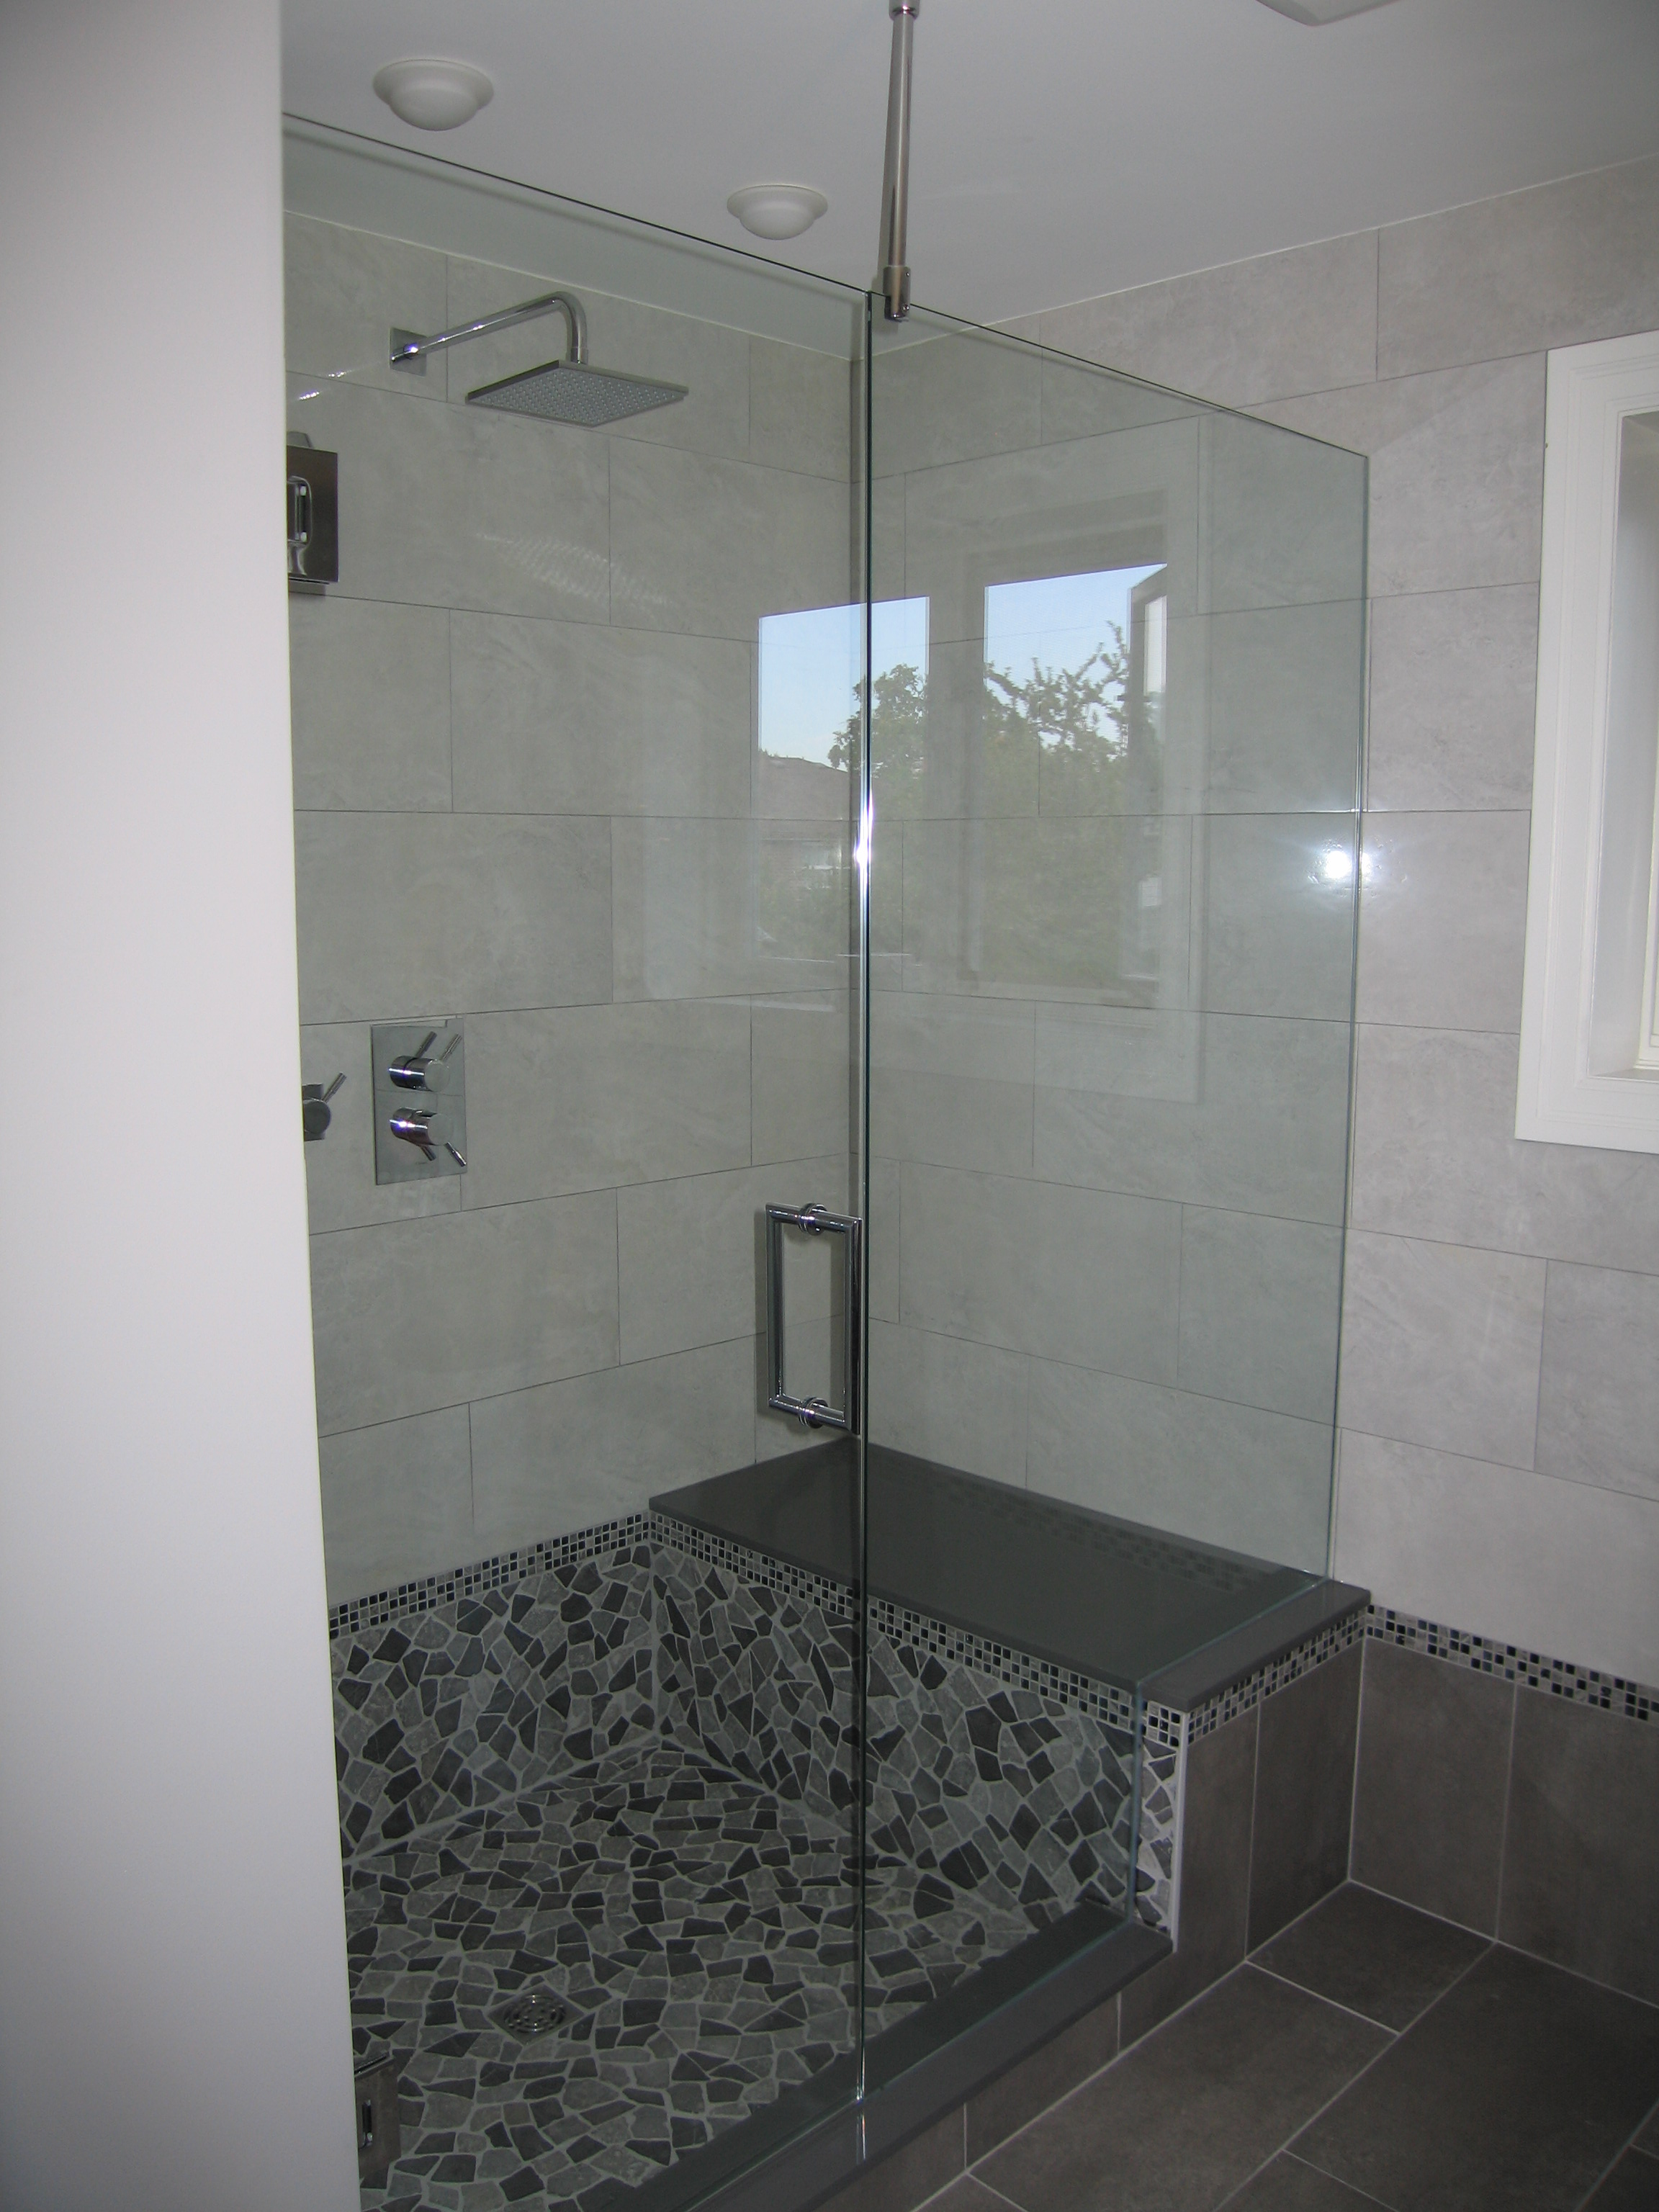 en pin light let hides excellent would the be for but doors toilet in sliding this idea shower door s suite glass